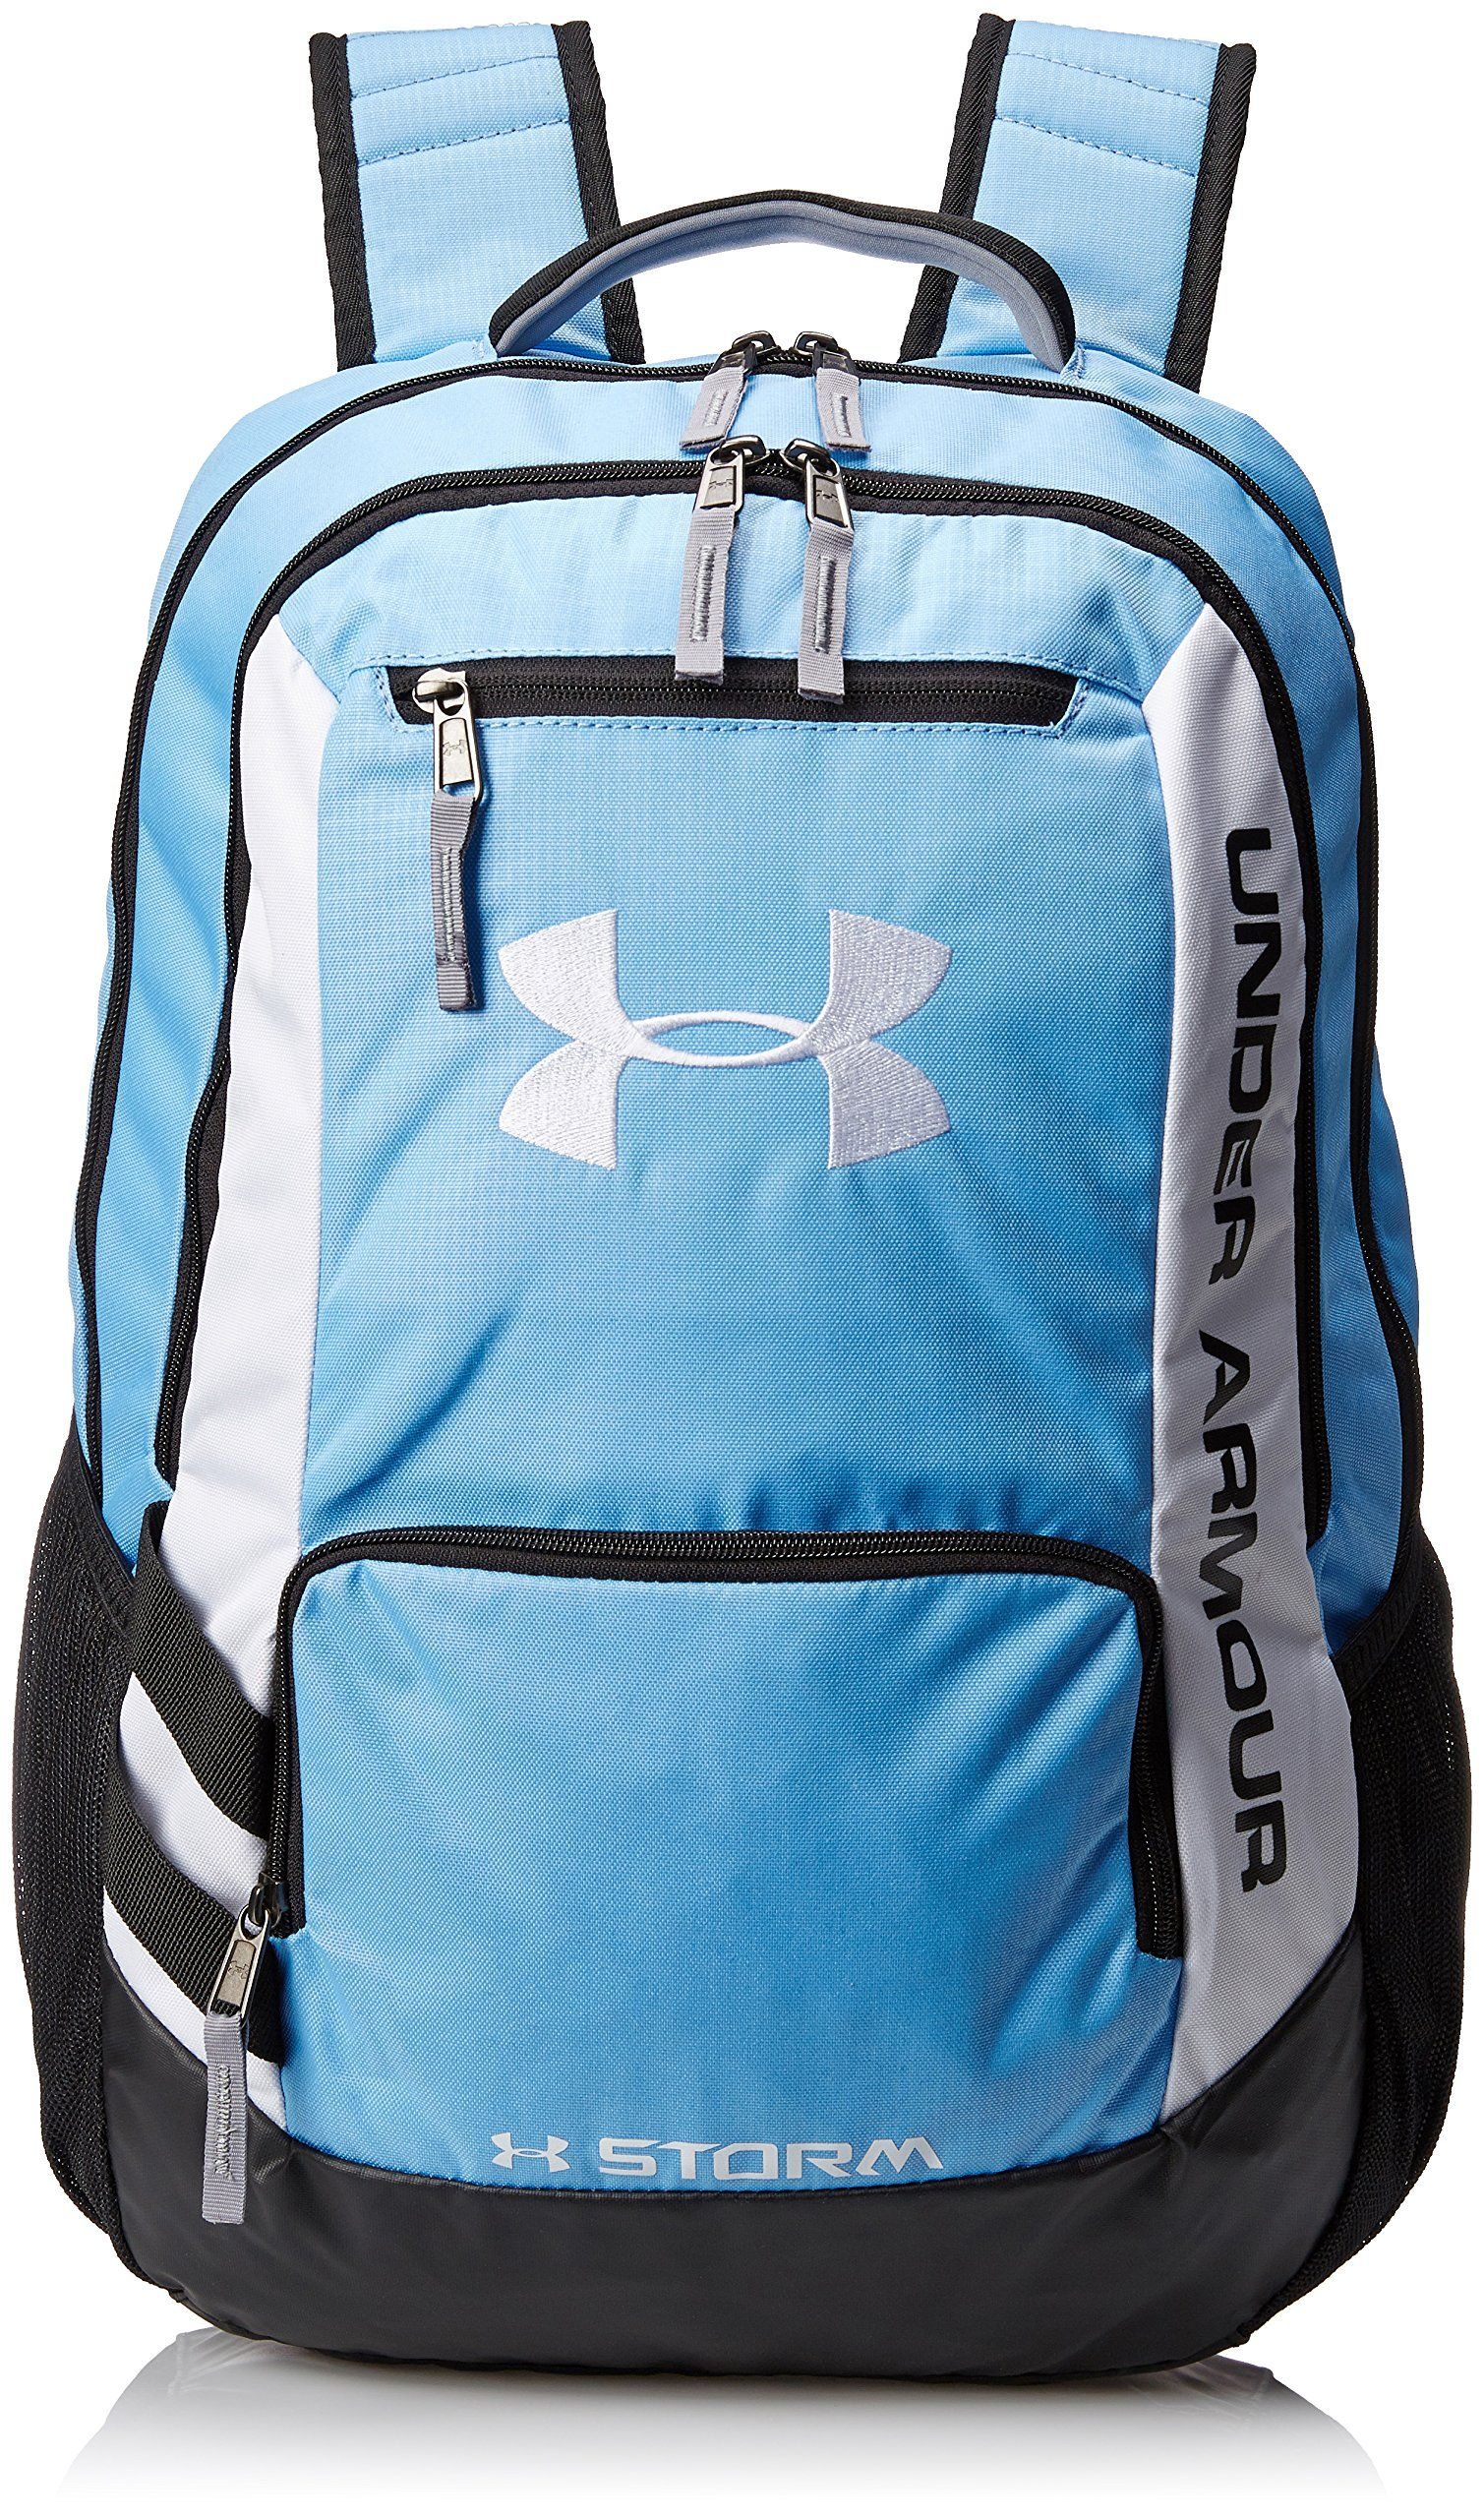 39eb8e0b1d93 Under Armour Hustle Backpack